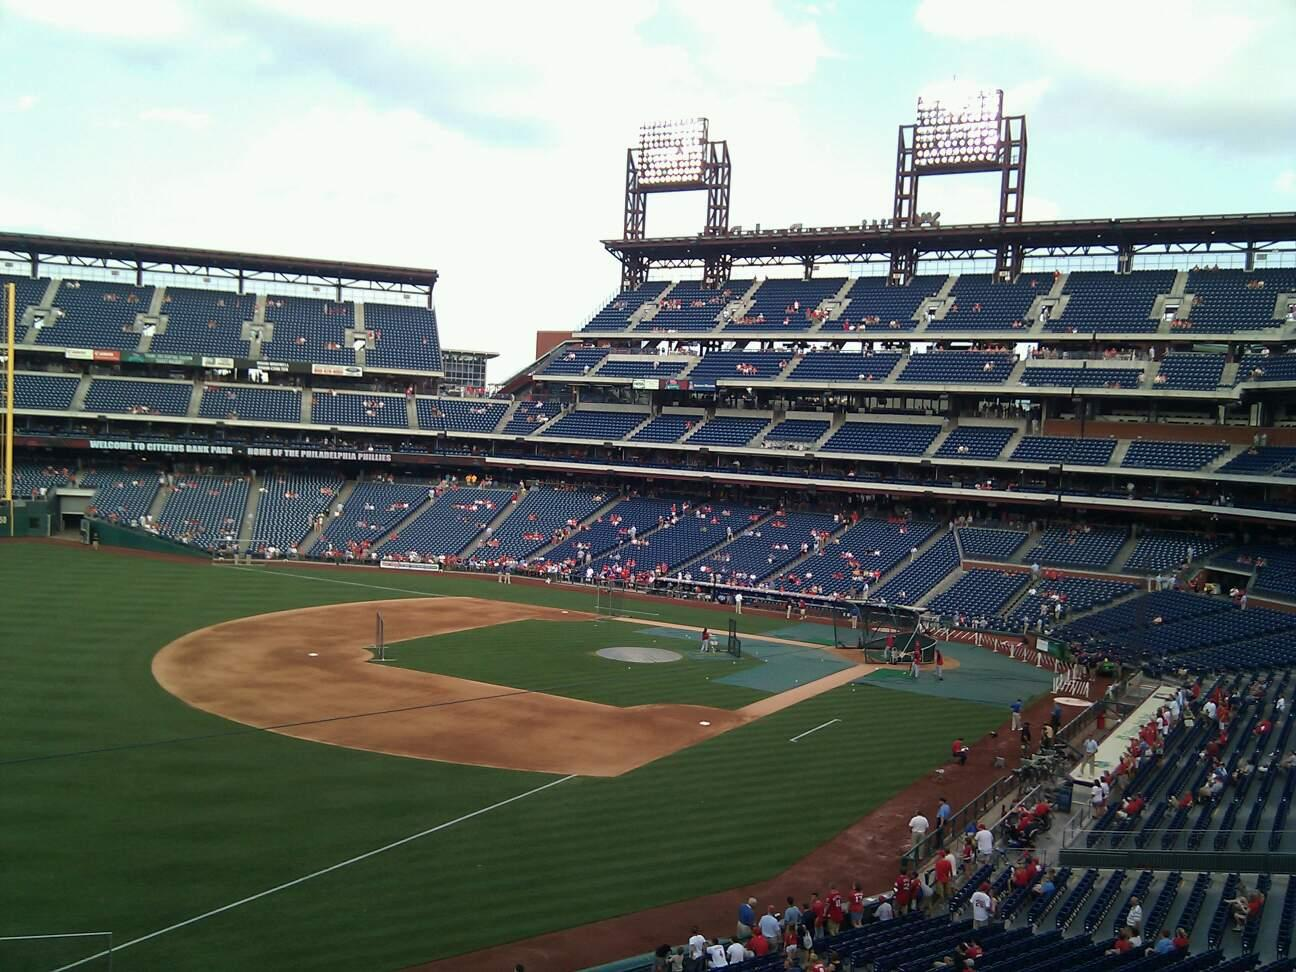 Citizens Bank Park Section 235 Row 1 Seat 5